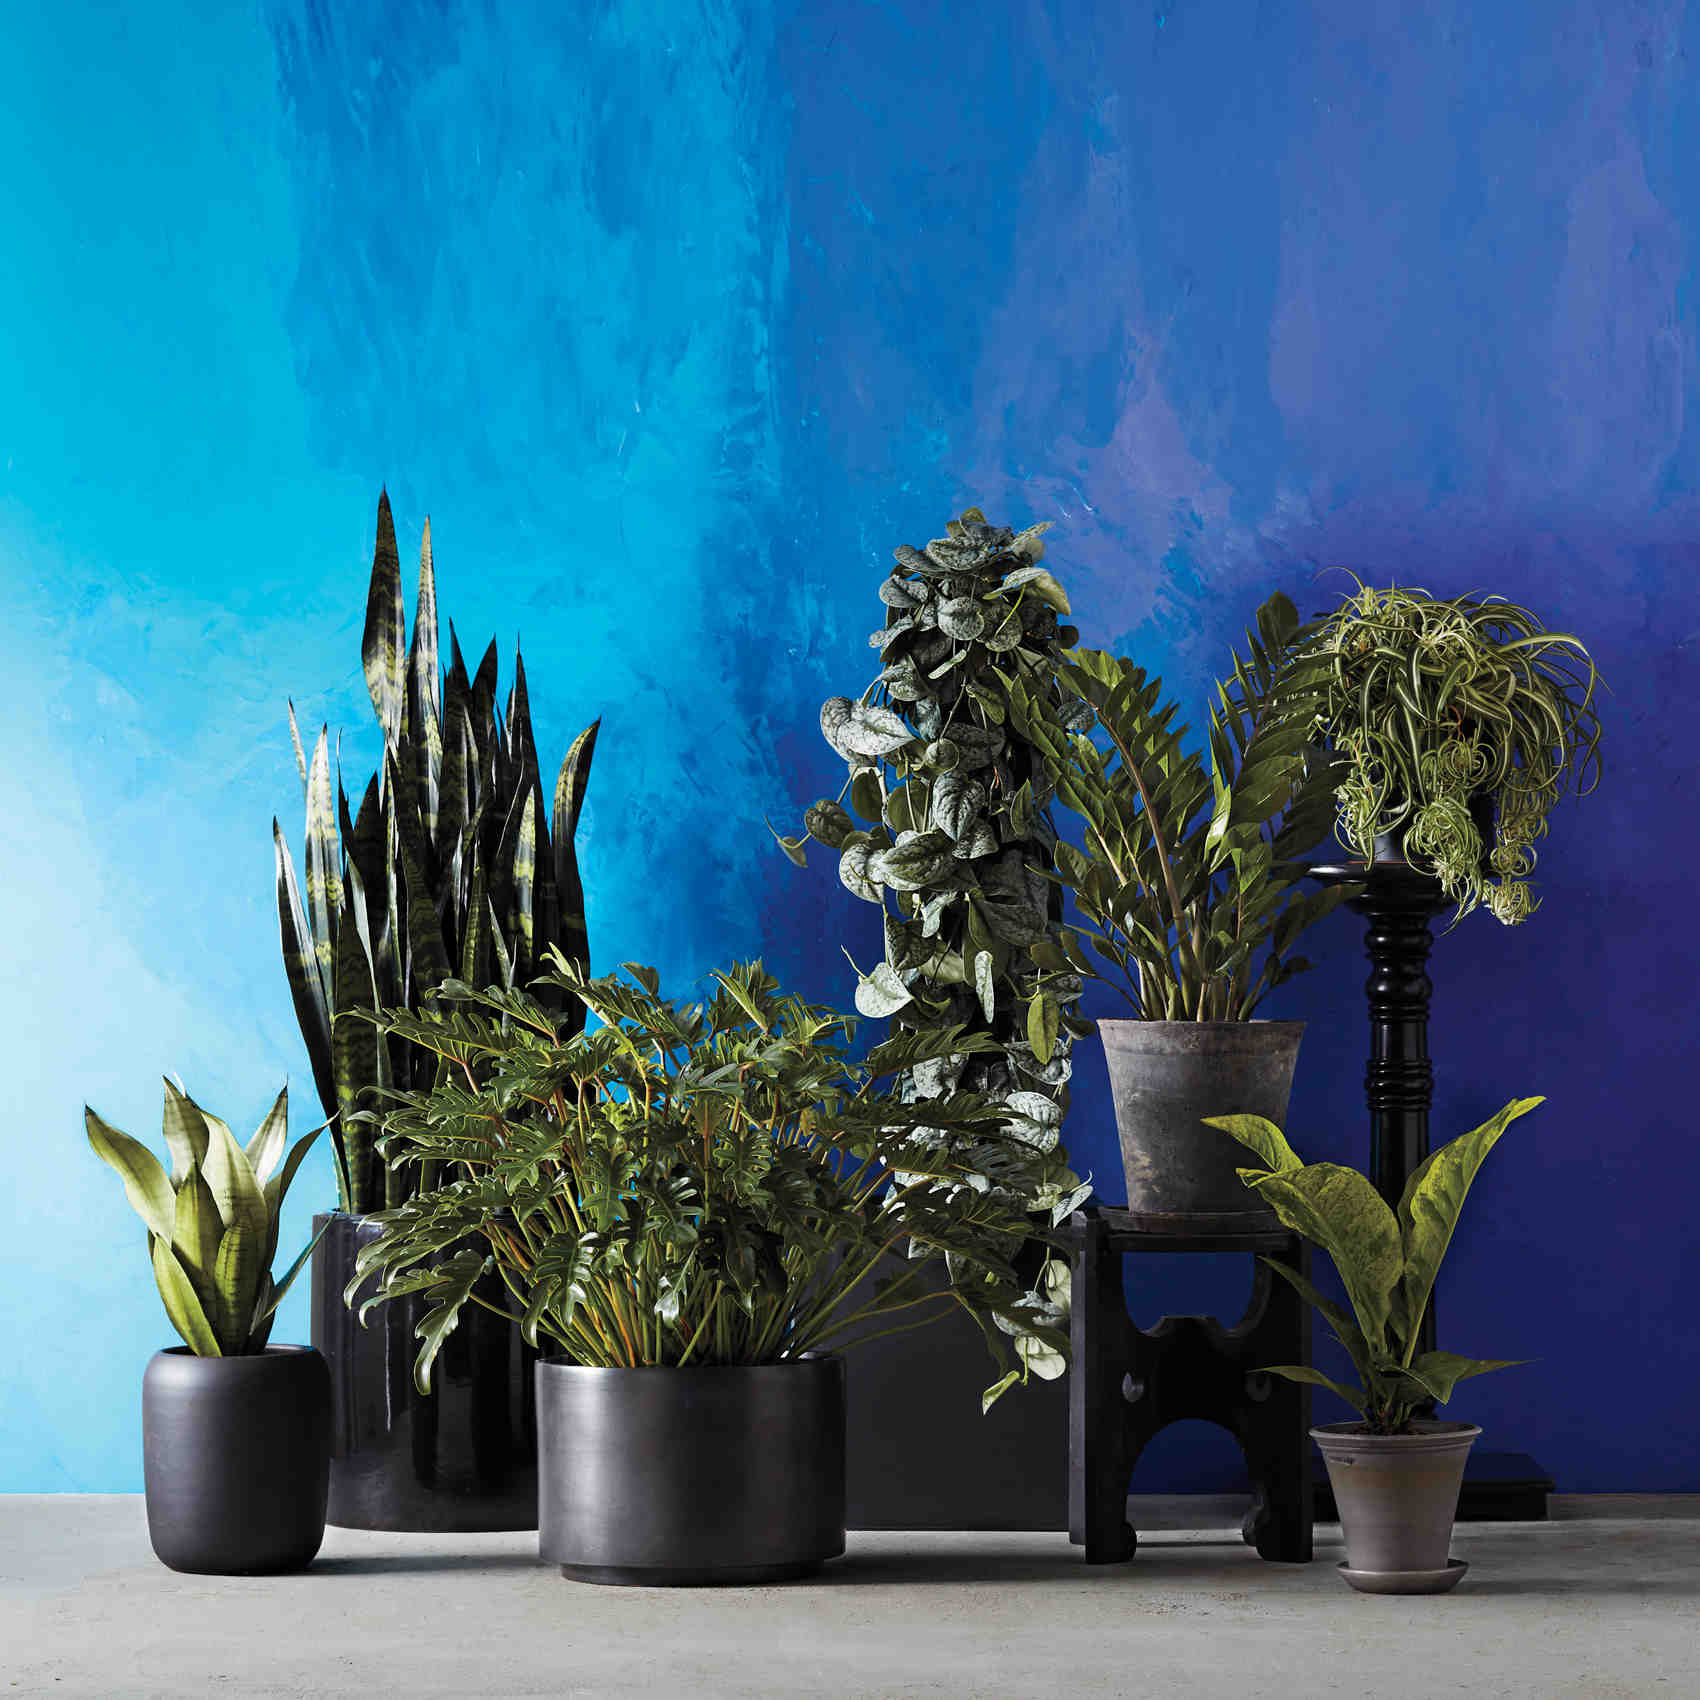 Grow light for houseplants -  Grow Gorgeous Houseplants In Any Kind Of Light